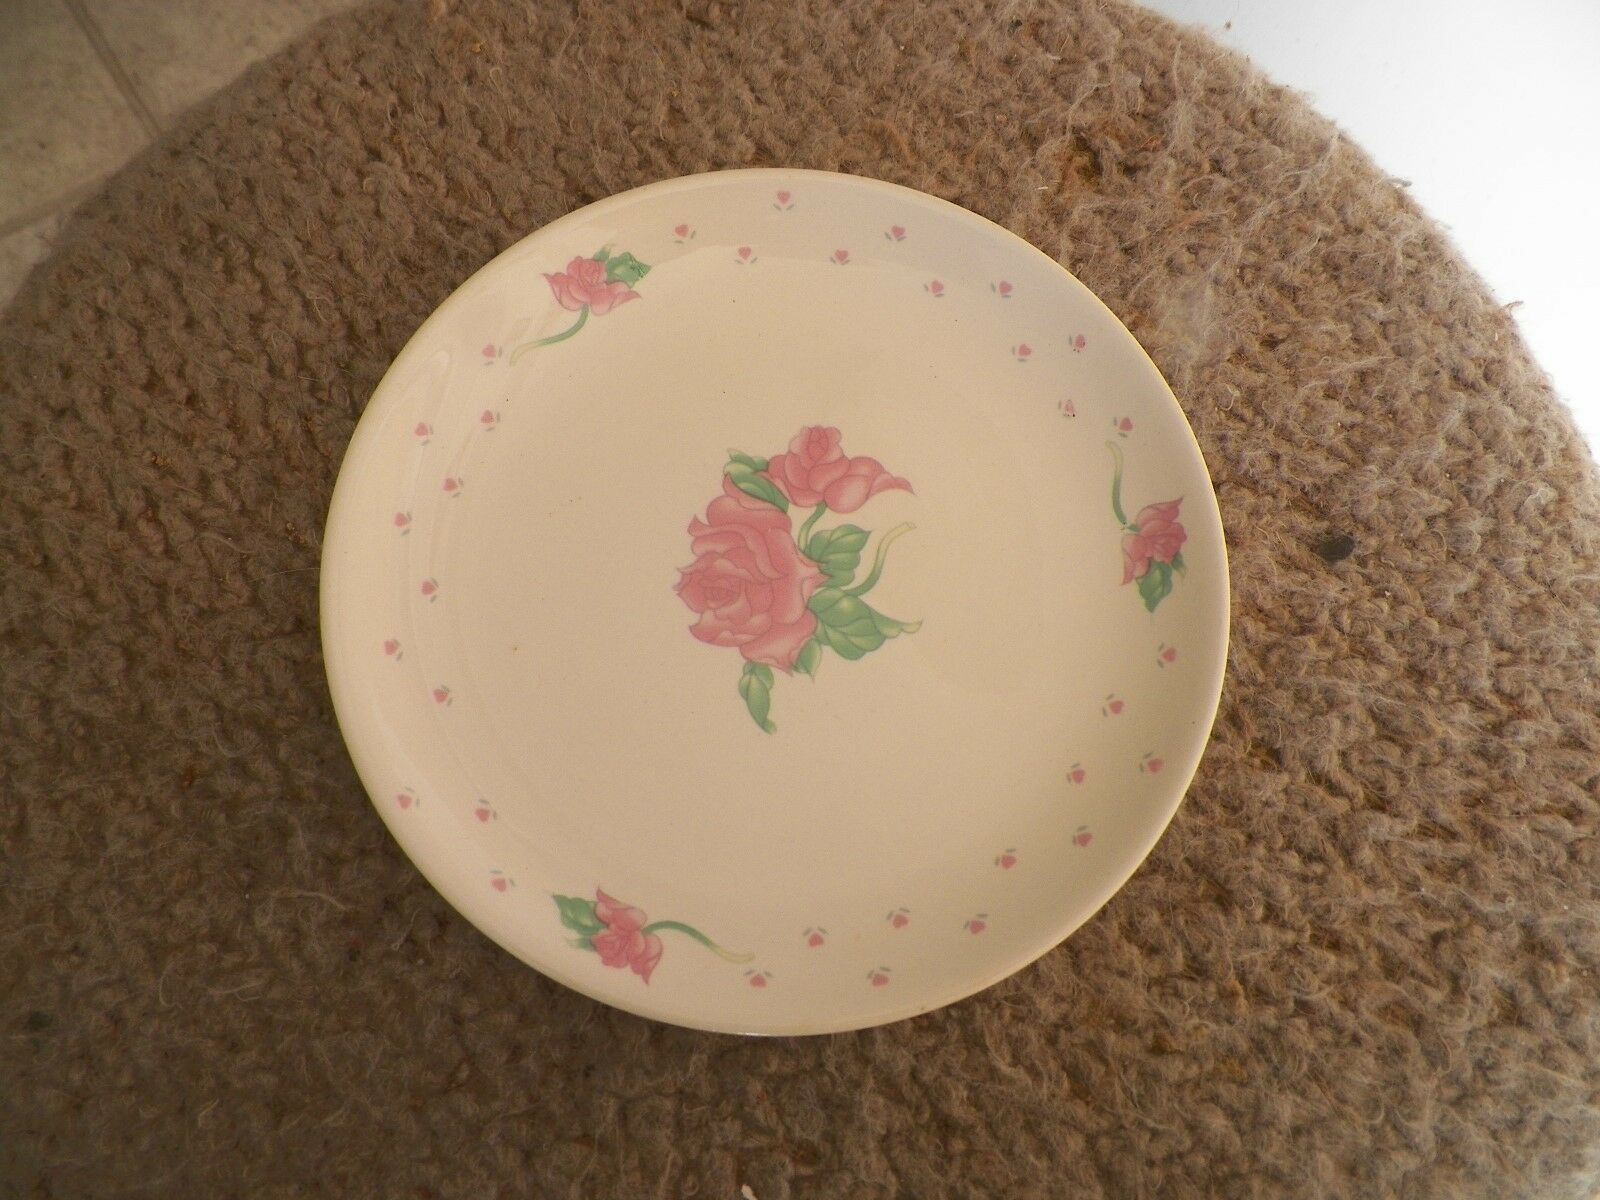 Tabletops Unlimited bread plate (Pink Rose) 4 available - $2.08